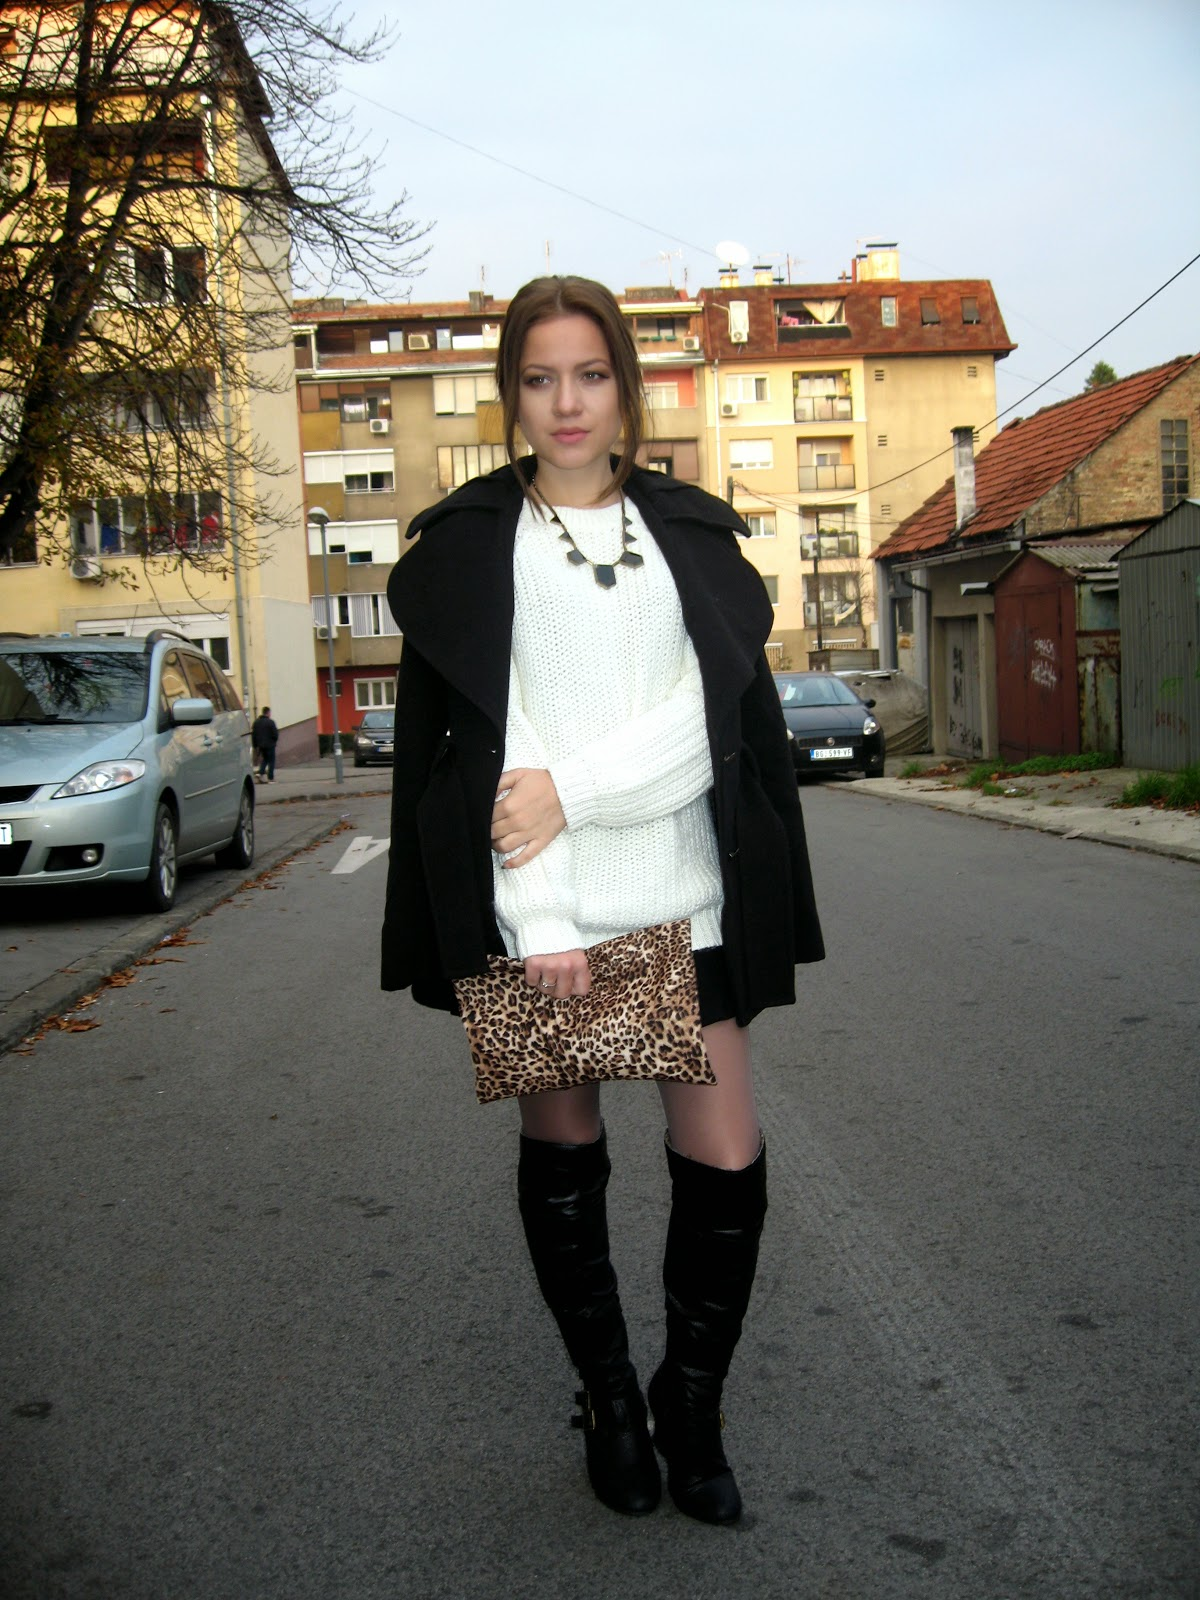 outfit, C&A white knit sweater, black flared high waisted shorts, over the knee boots, black coat, leopard print clutch bag